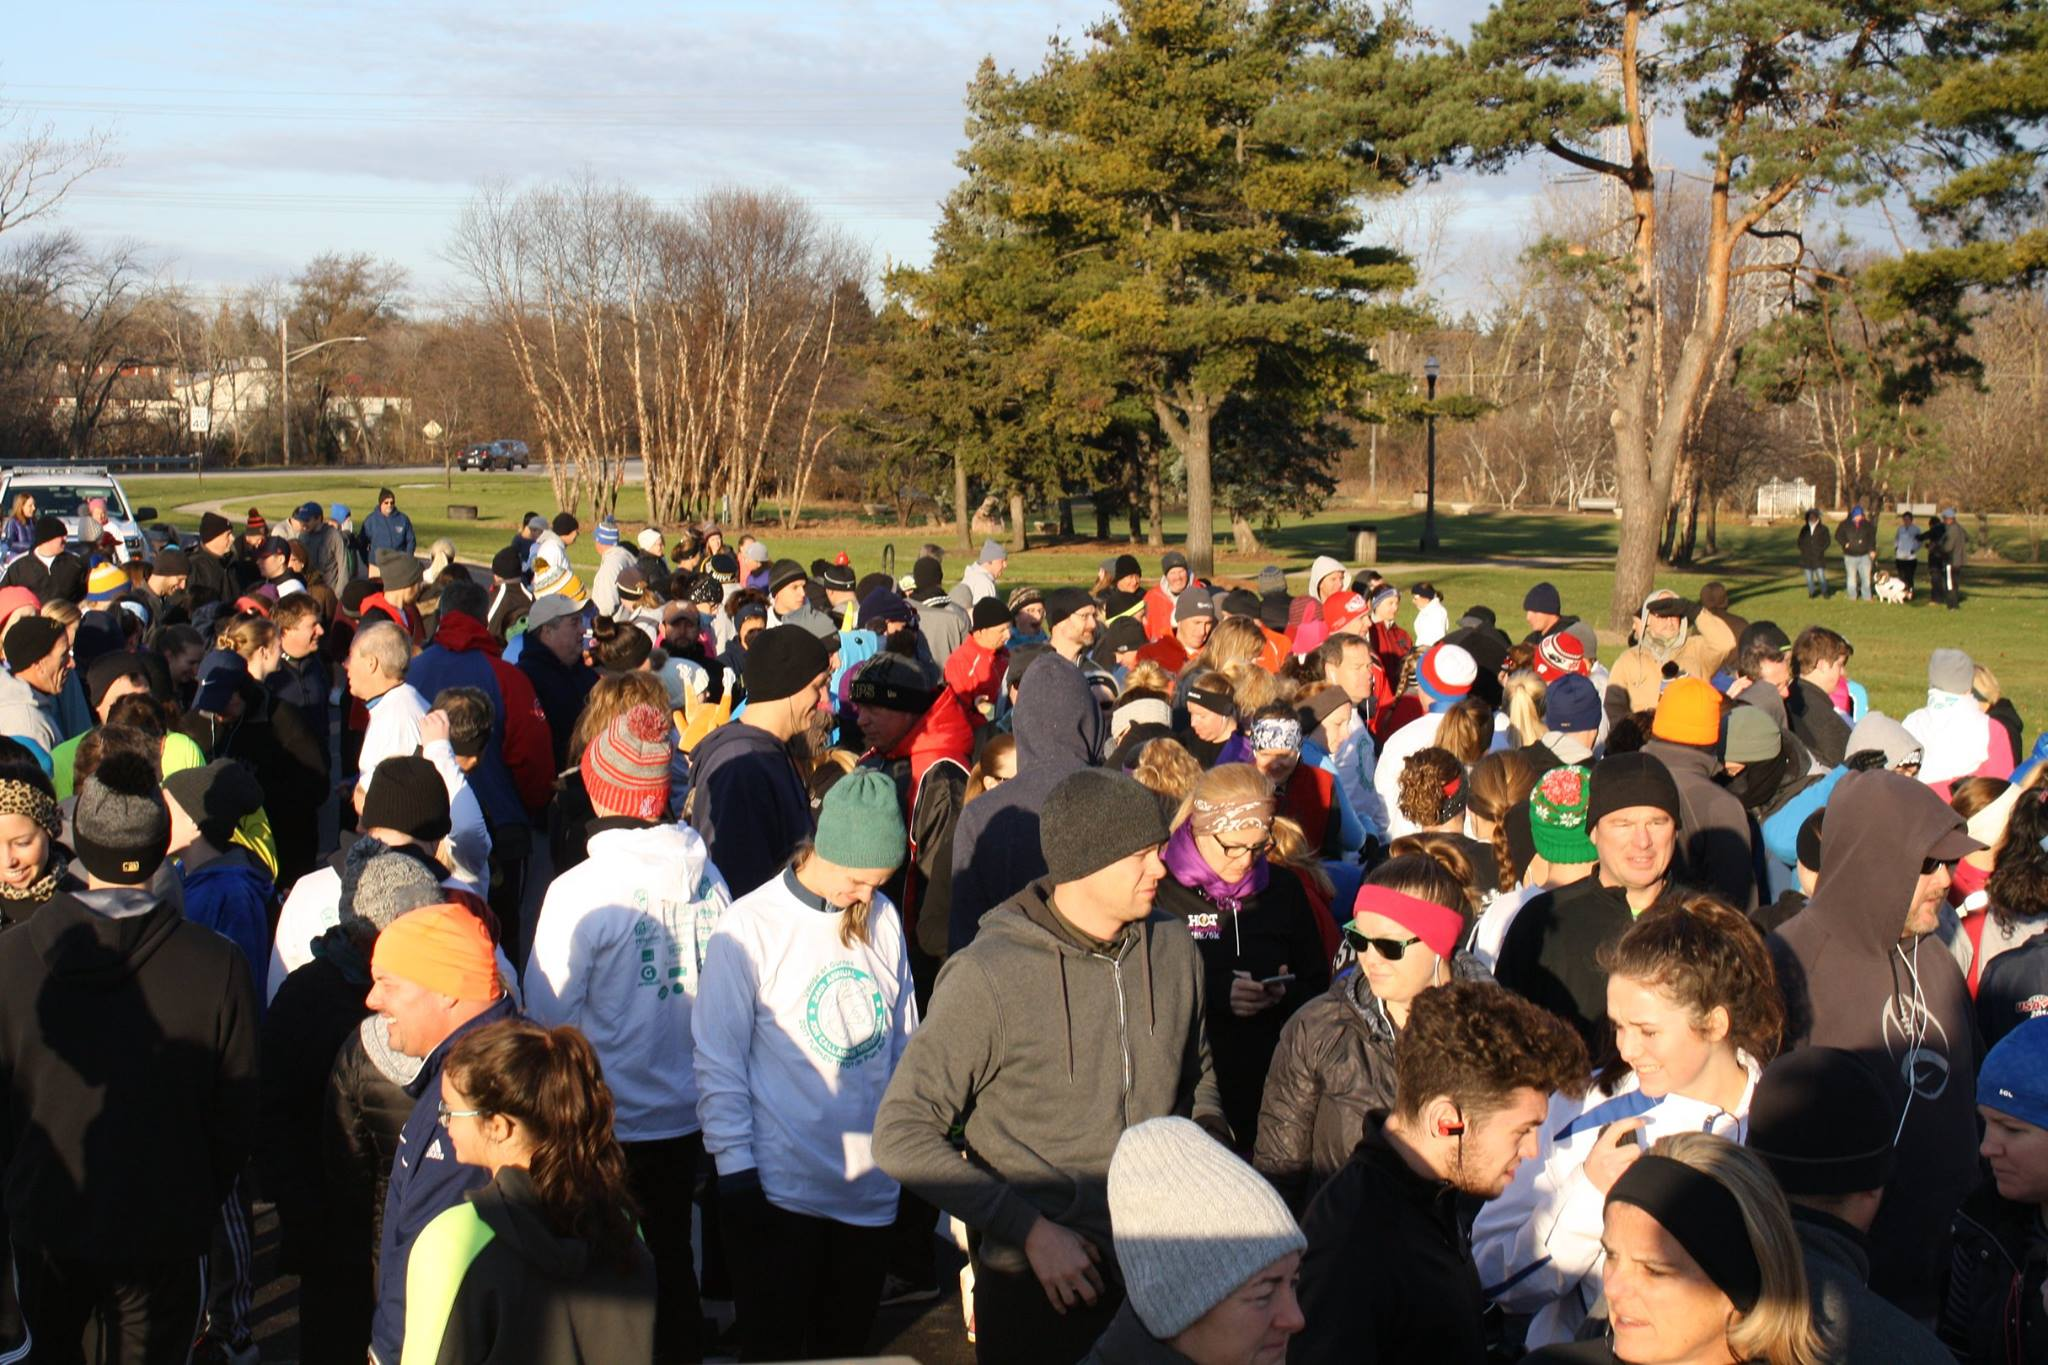 2017 Gurnee Turkey Trot Funds Distribution